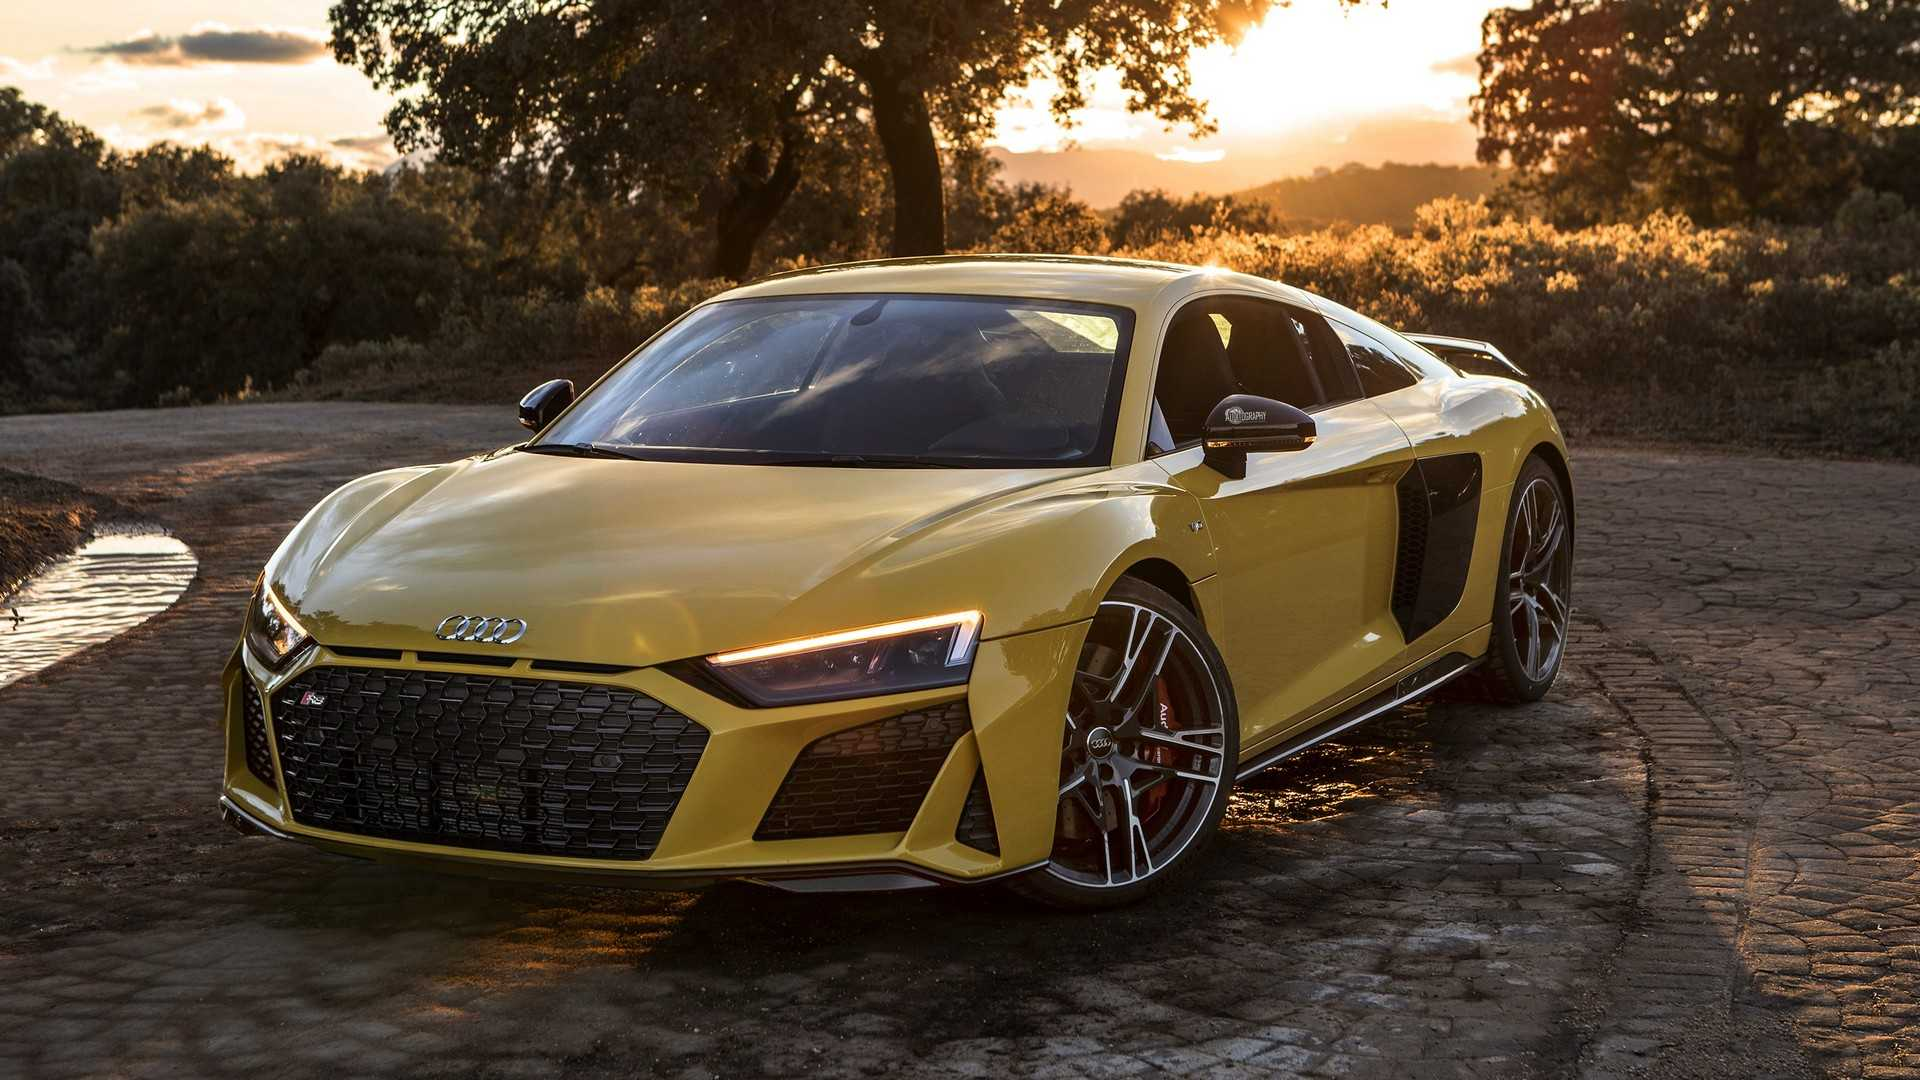 2019 audi r8 v10 performance looks brutal in yellow. Black Bedroom Furniture Sets. Home Design Ideas